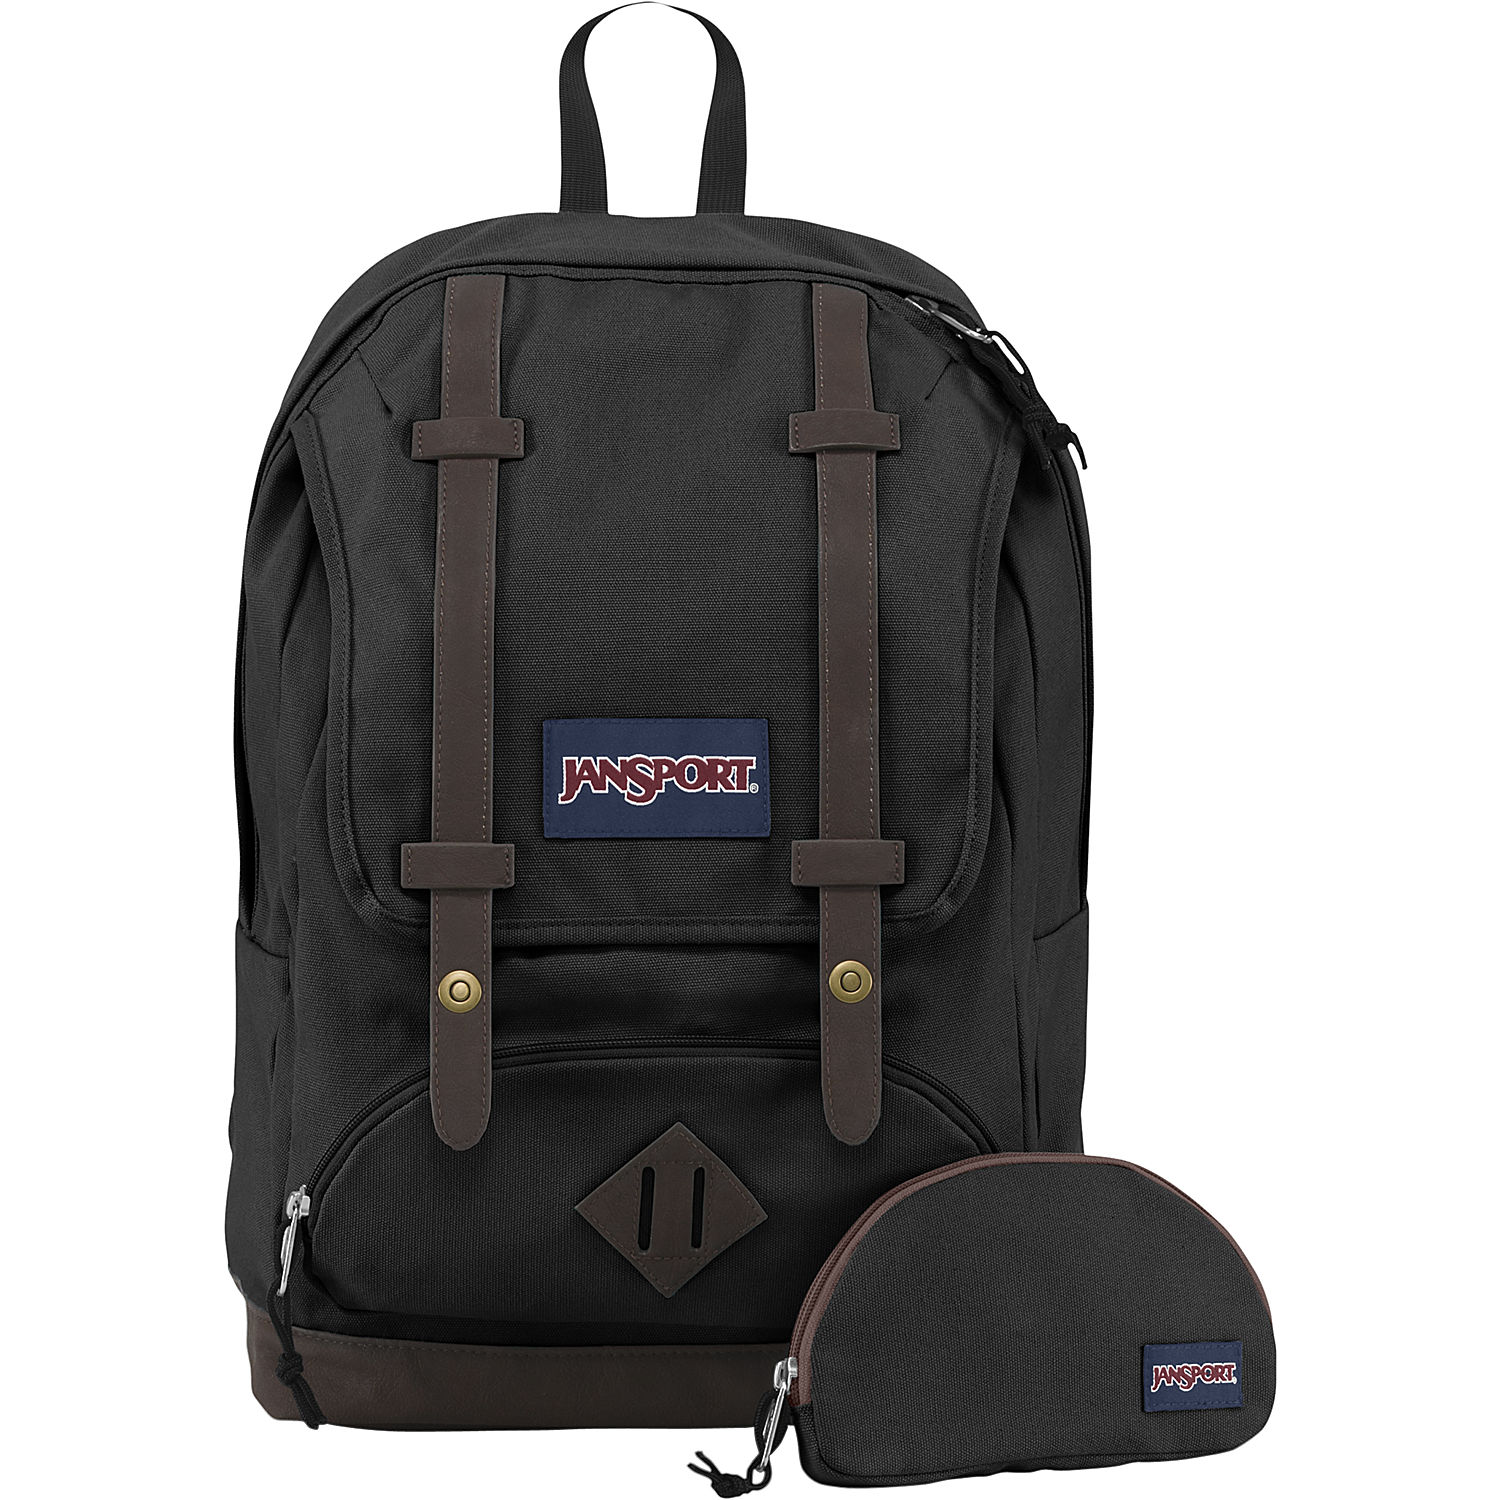 521c3db52e Jansport Backpack Retailers - Crazy Backpacks